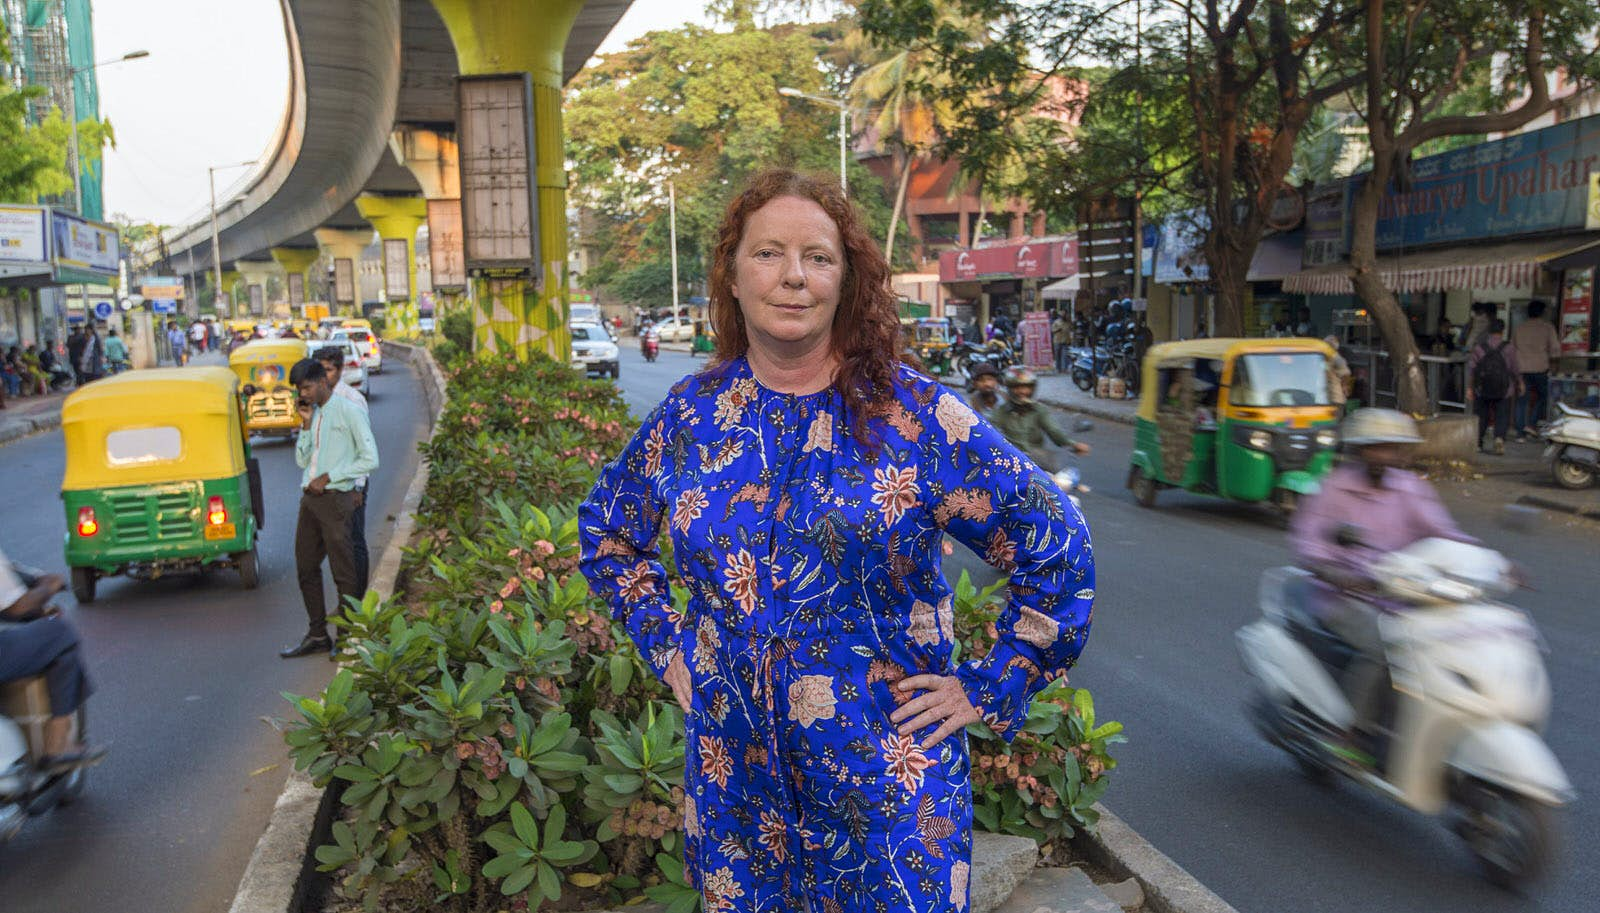 The author poses in India. She is standing in an island in the middle of a road, wearing a blue dress. Tuk tuks, mopeds and cars are speeding past her on either side.